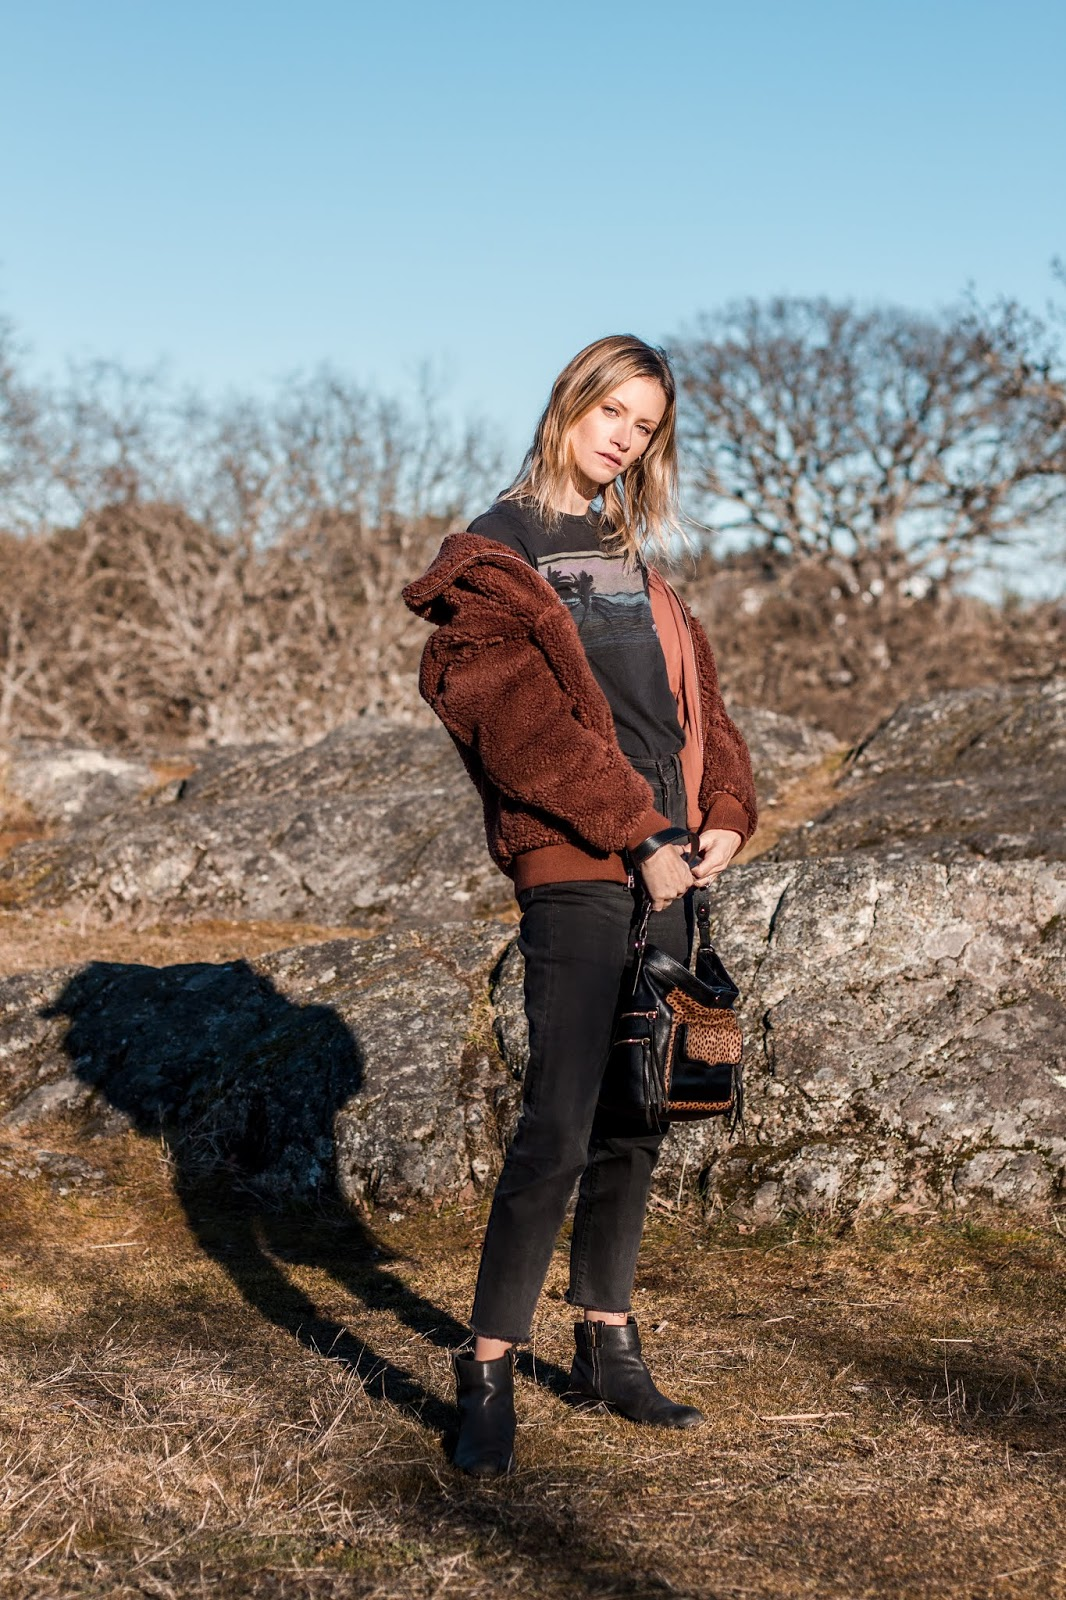 Victoria style blogger, Alison Hutchinson is wearing an aritzia teddy coat, all saints tee, levis jeans and a Rebecca Minkoff leopard print bag